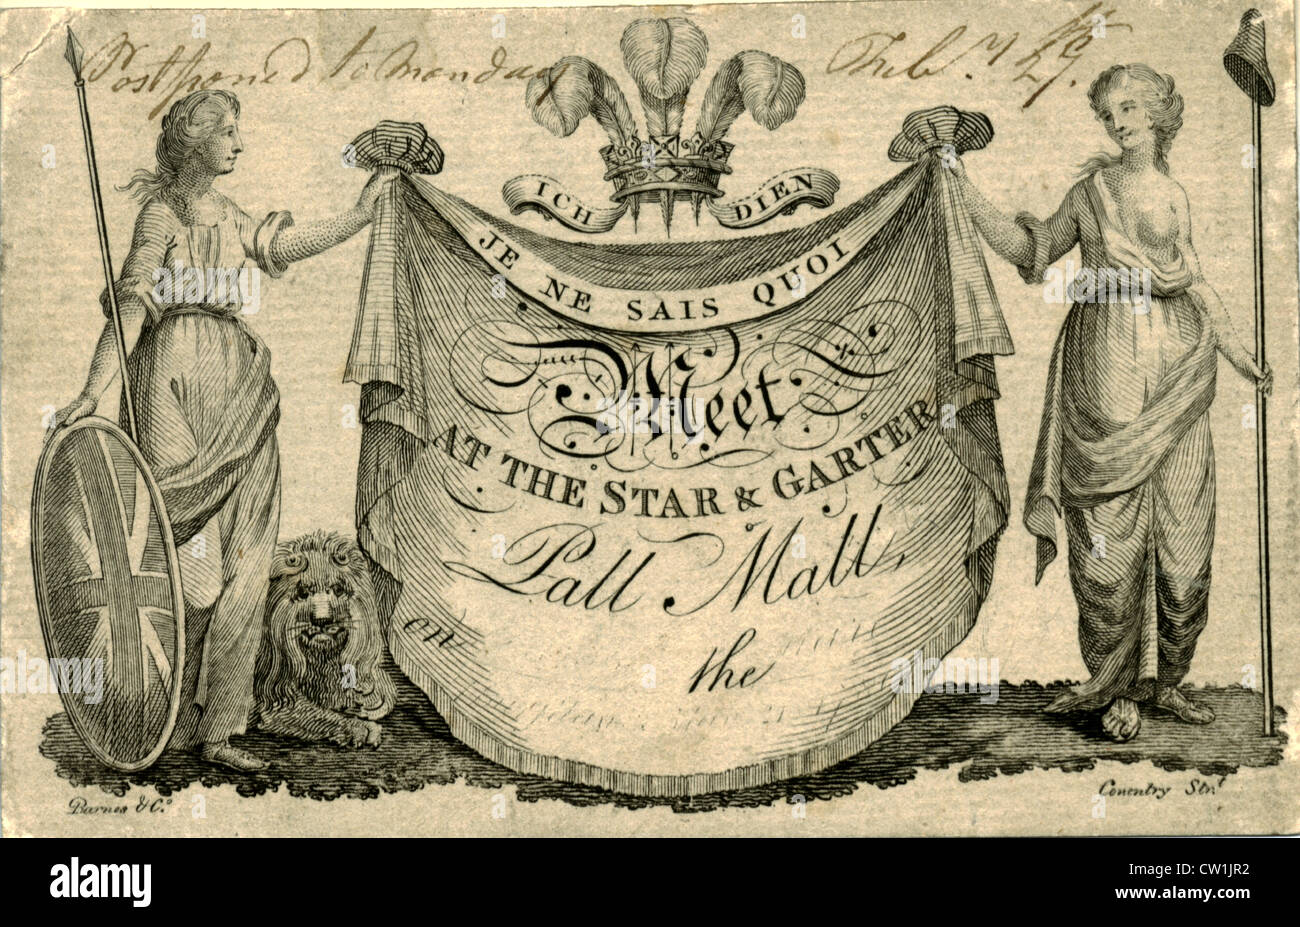 18th century engraved invitation with crest and motto of Prince of Wales - Stock Image